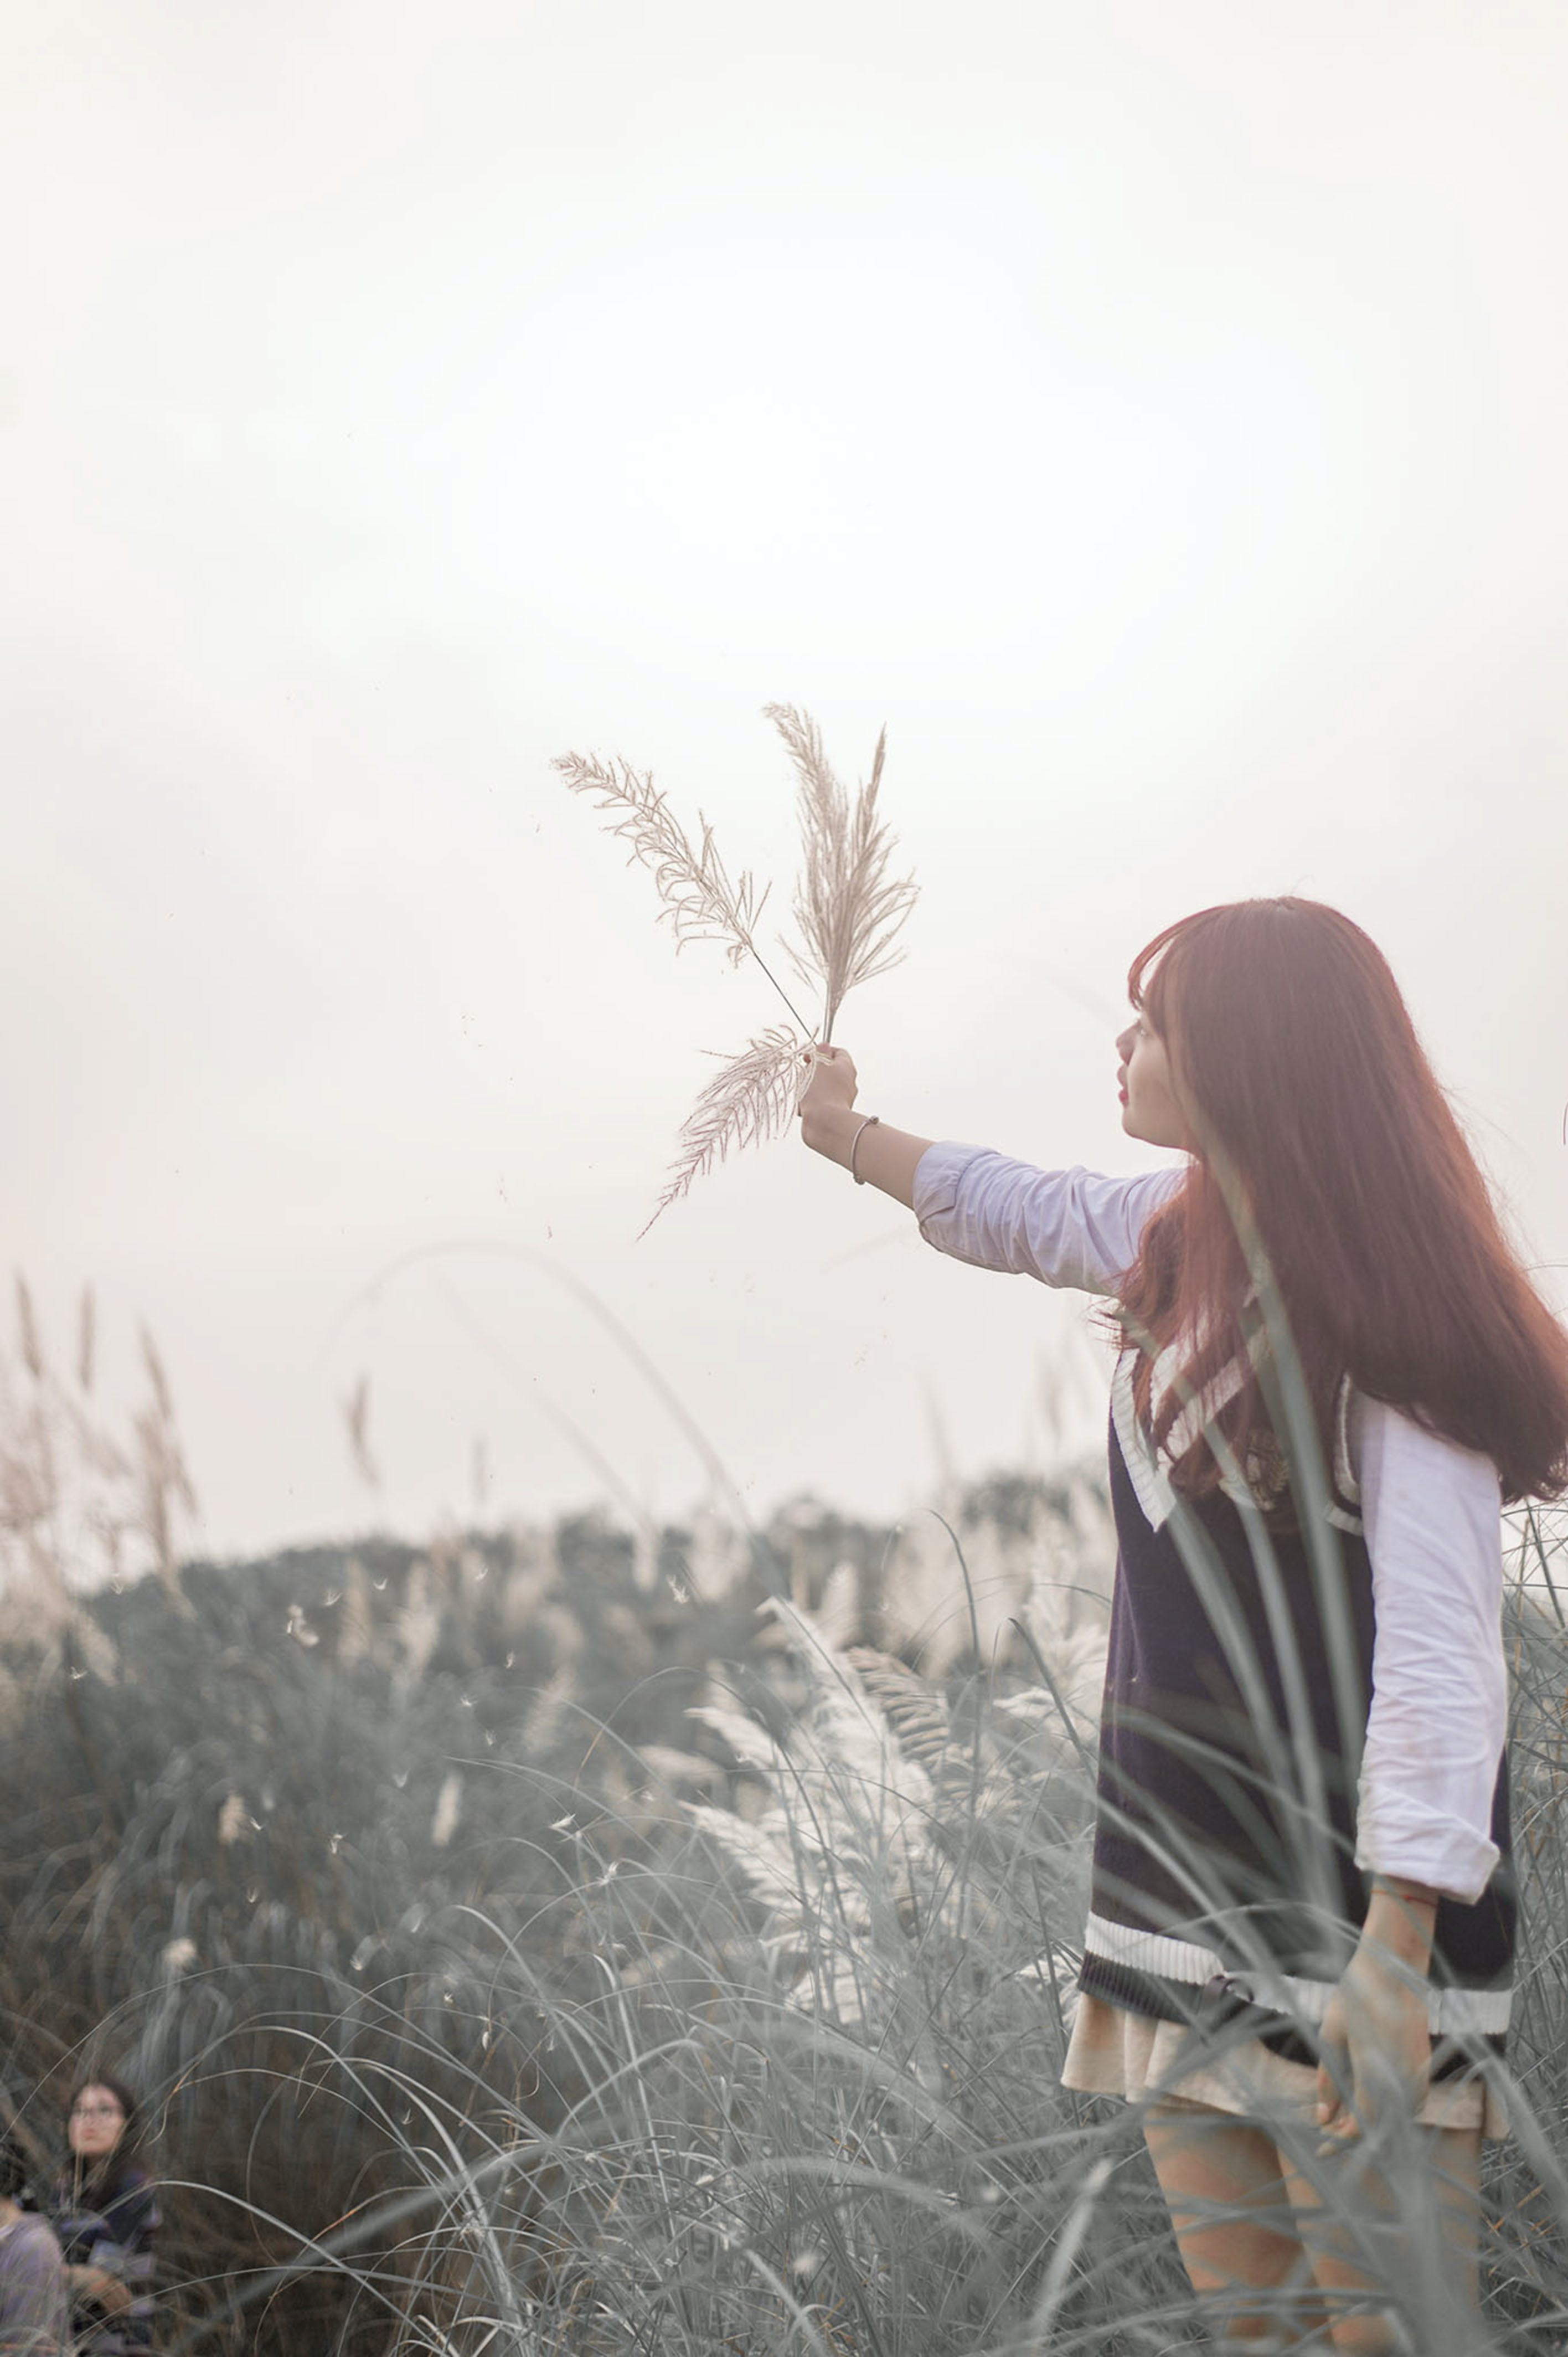 Woman Raising Right Arm With Grasses